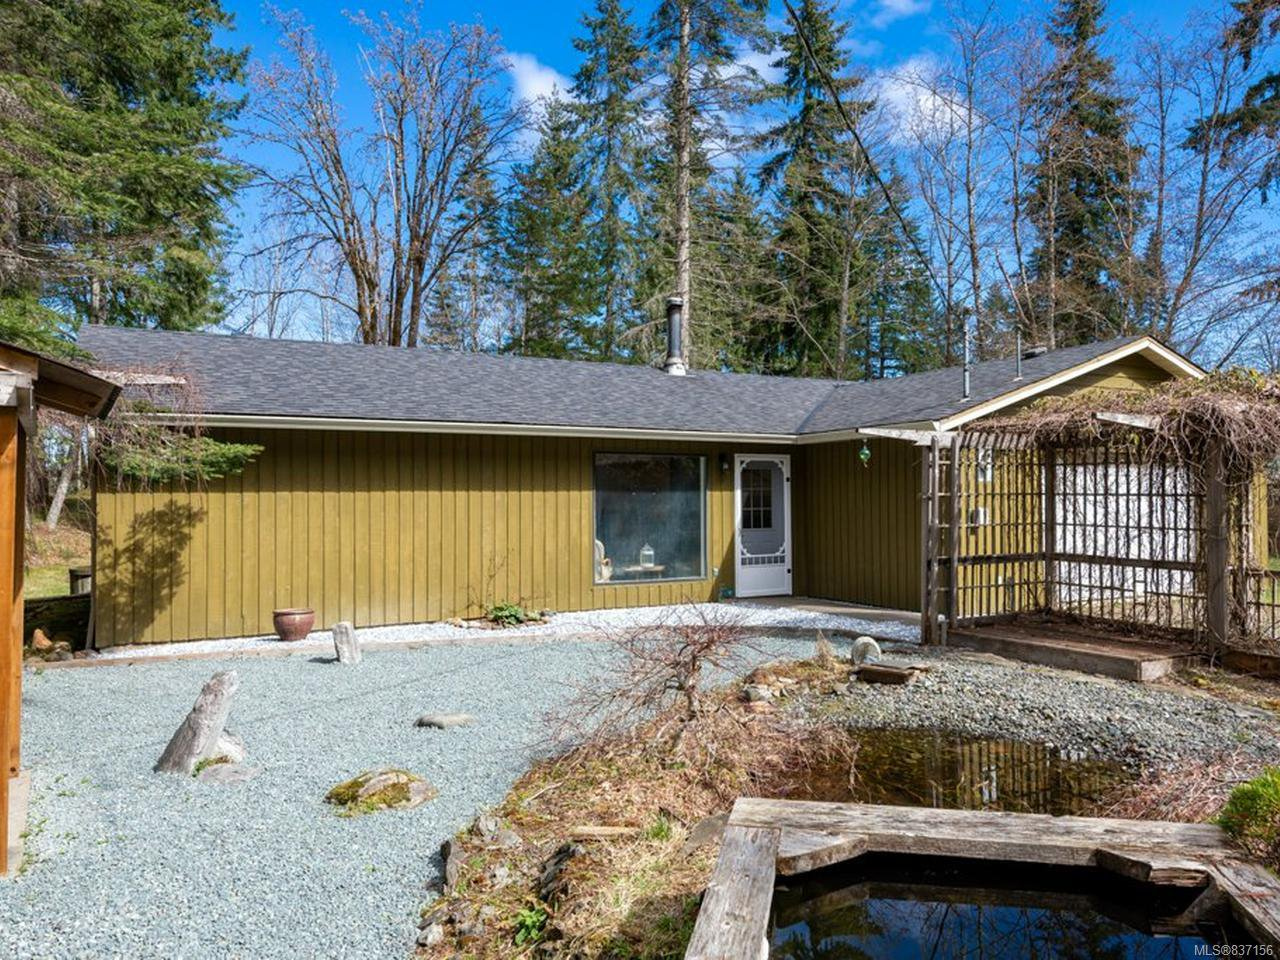 Main Photo: 3412 LODGE DRIVE in BLACK CREEK: CV Merville Black Creek House for sale (Comox Valley)  : MLS®# 837156